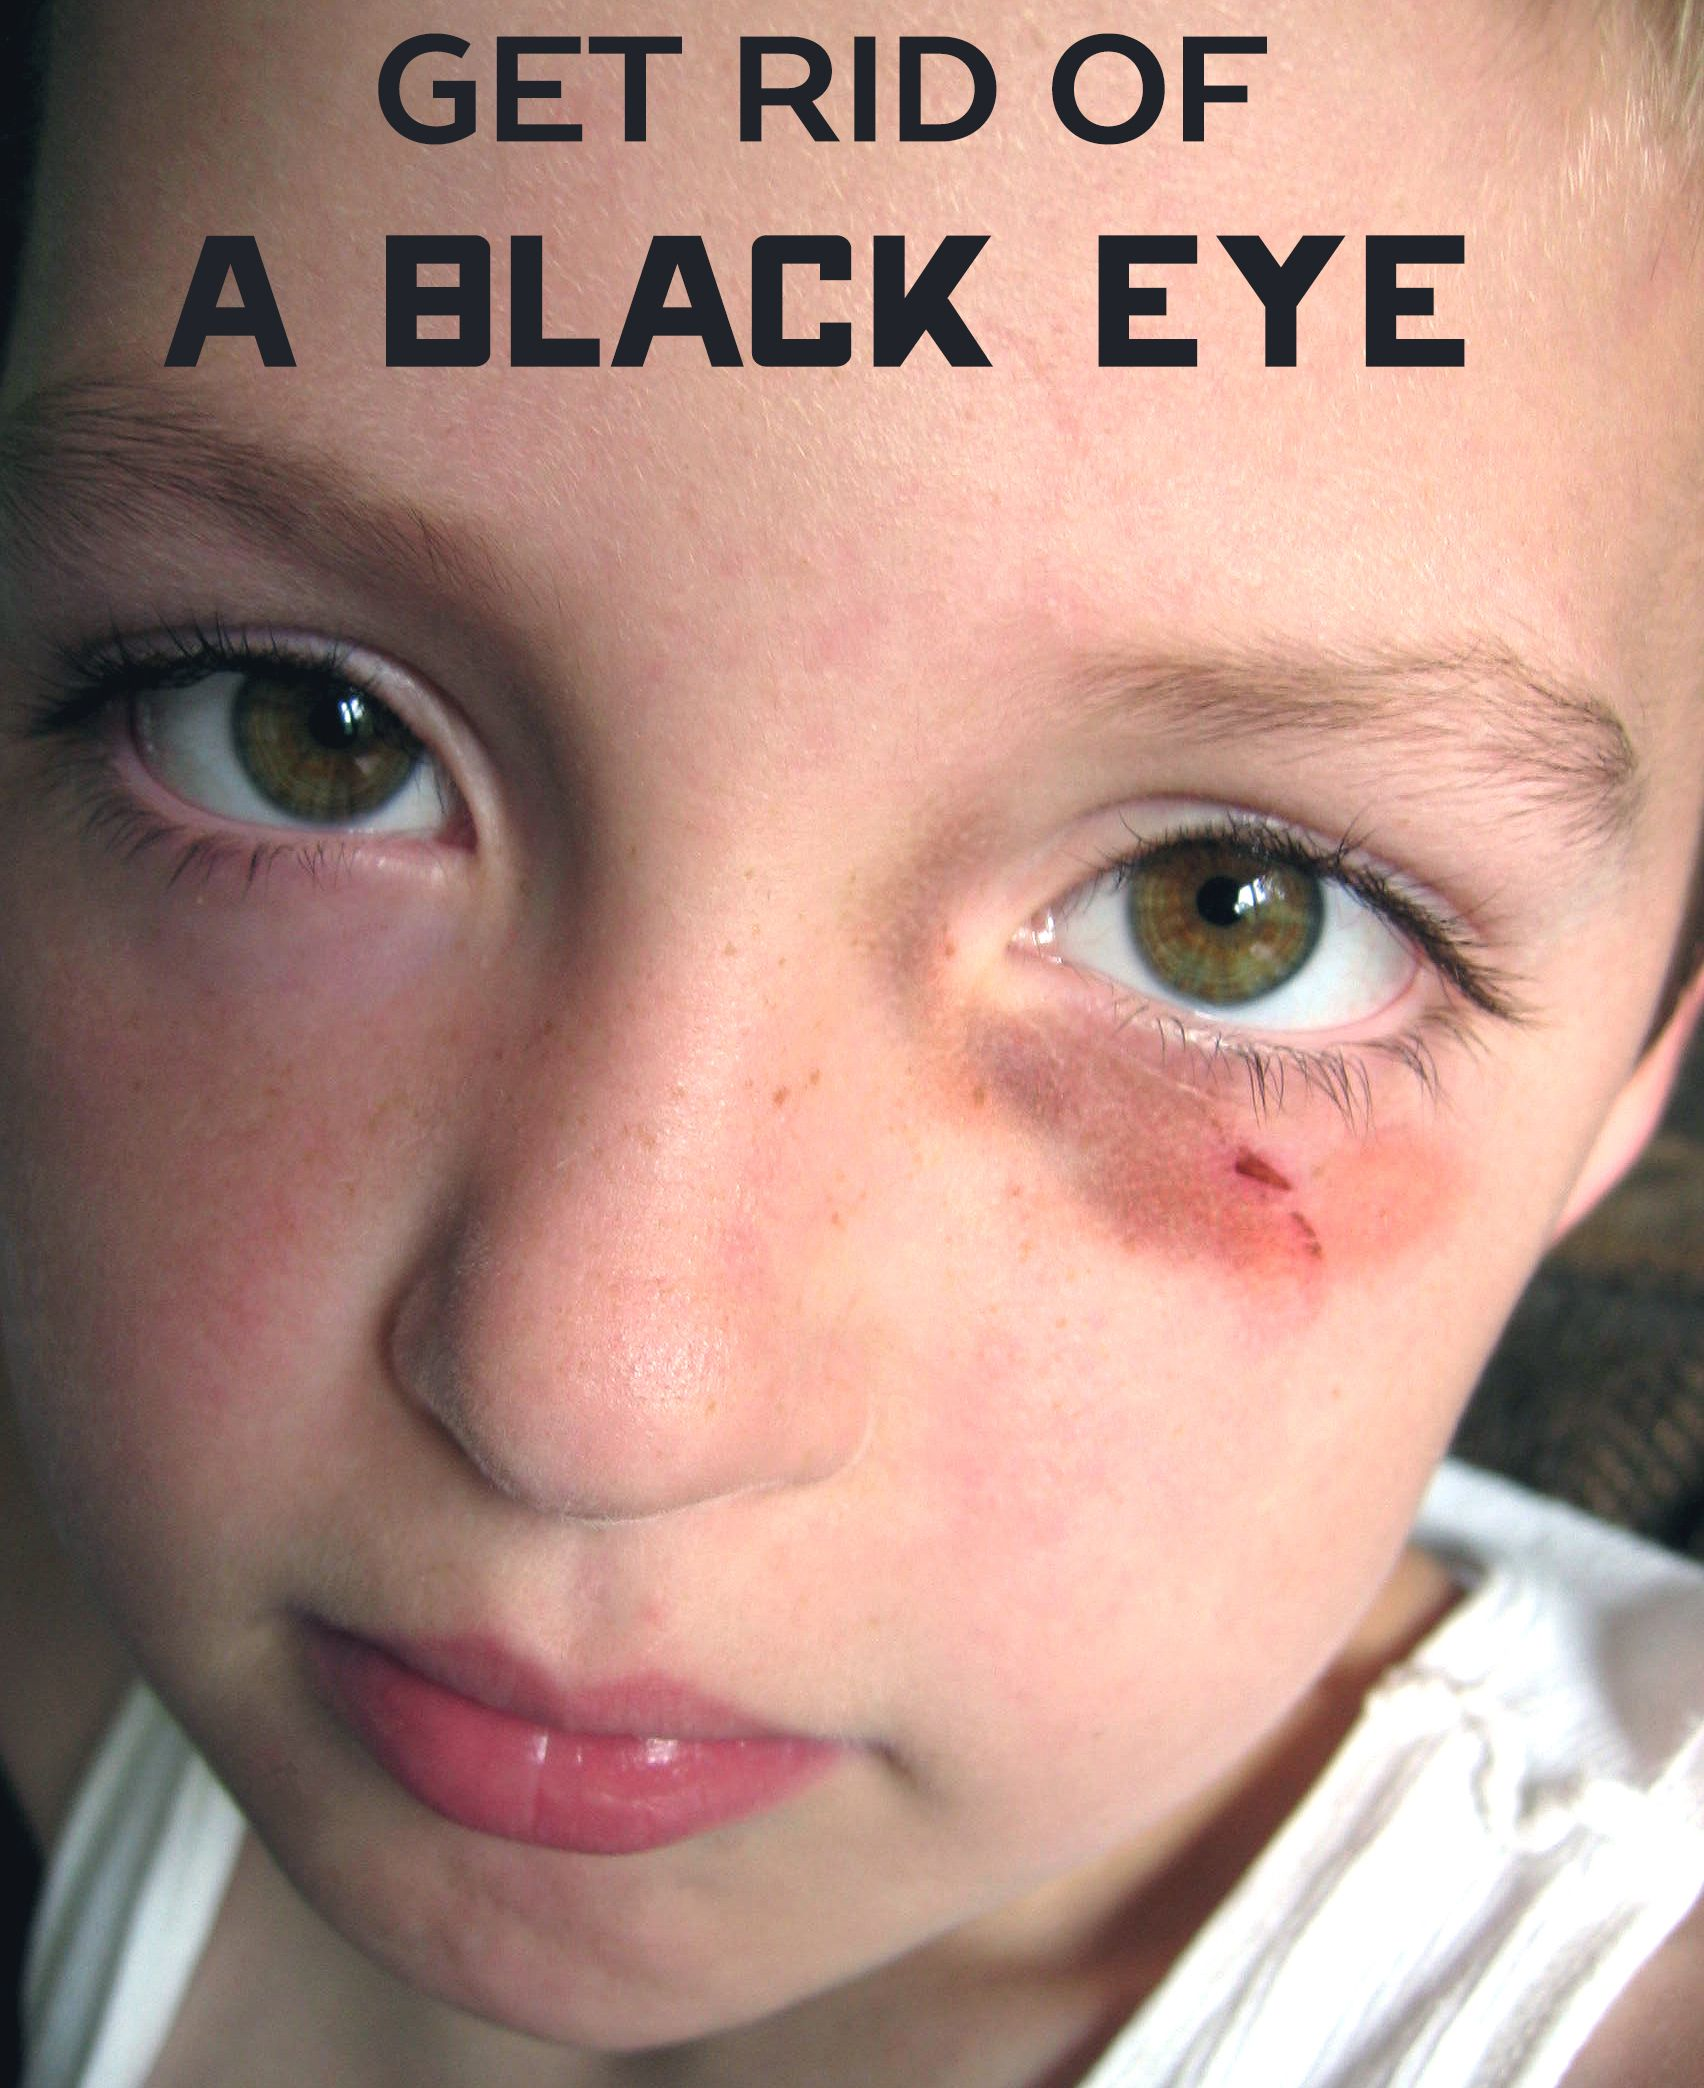 be17dae8dfcce5ea37bd1dca99c989e5 - How To Get Rid Of Swelling Black Eyes Fast